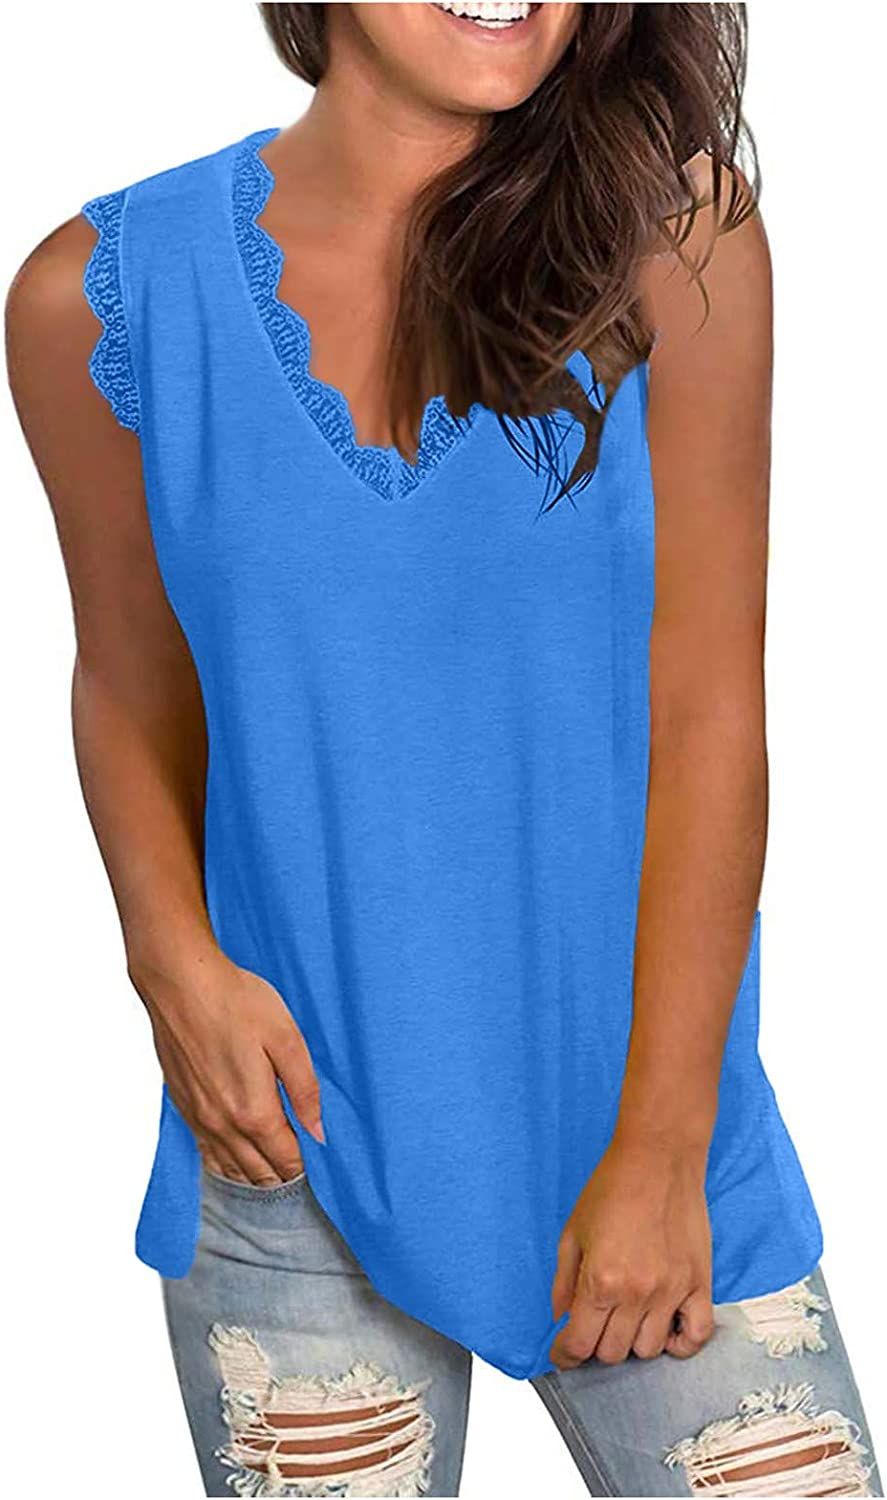 Womens Summer Tops Women's Casual Lace V-Neck Solid Sleeveness Tops Loose Vest Blouses Juniors Girls